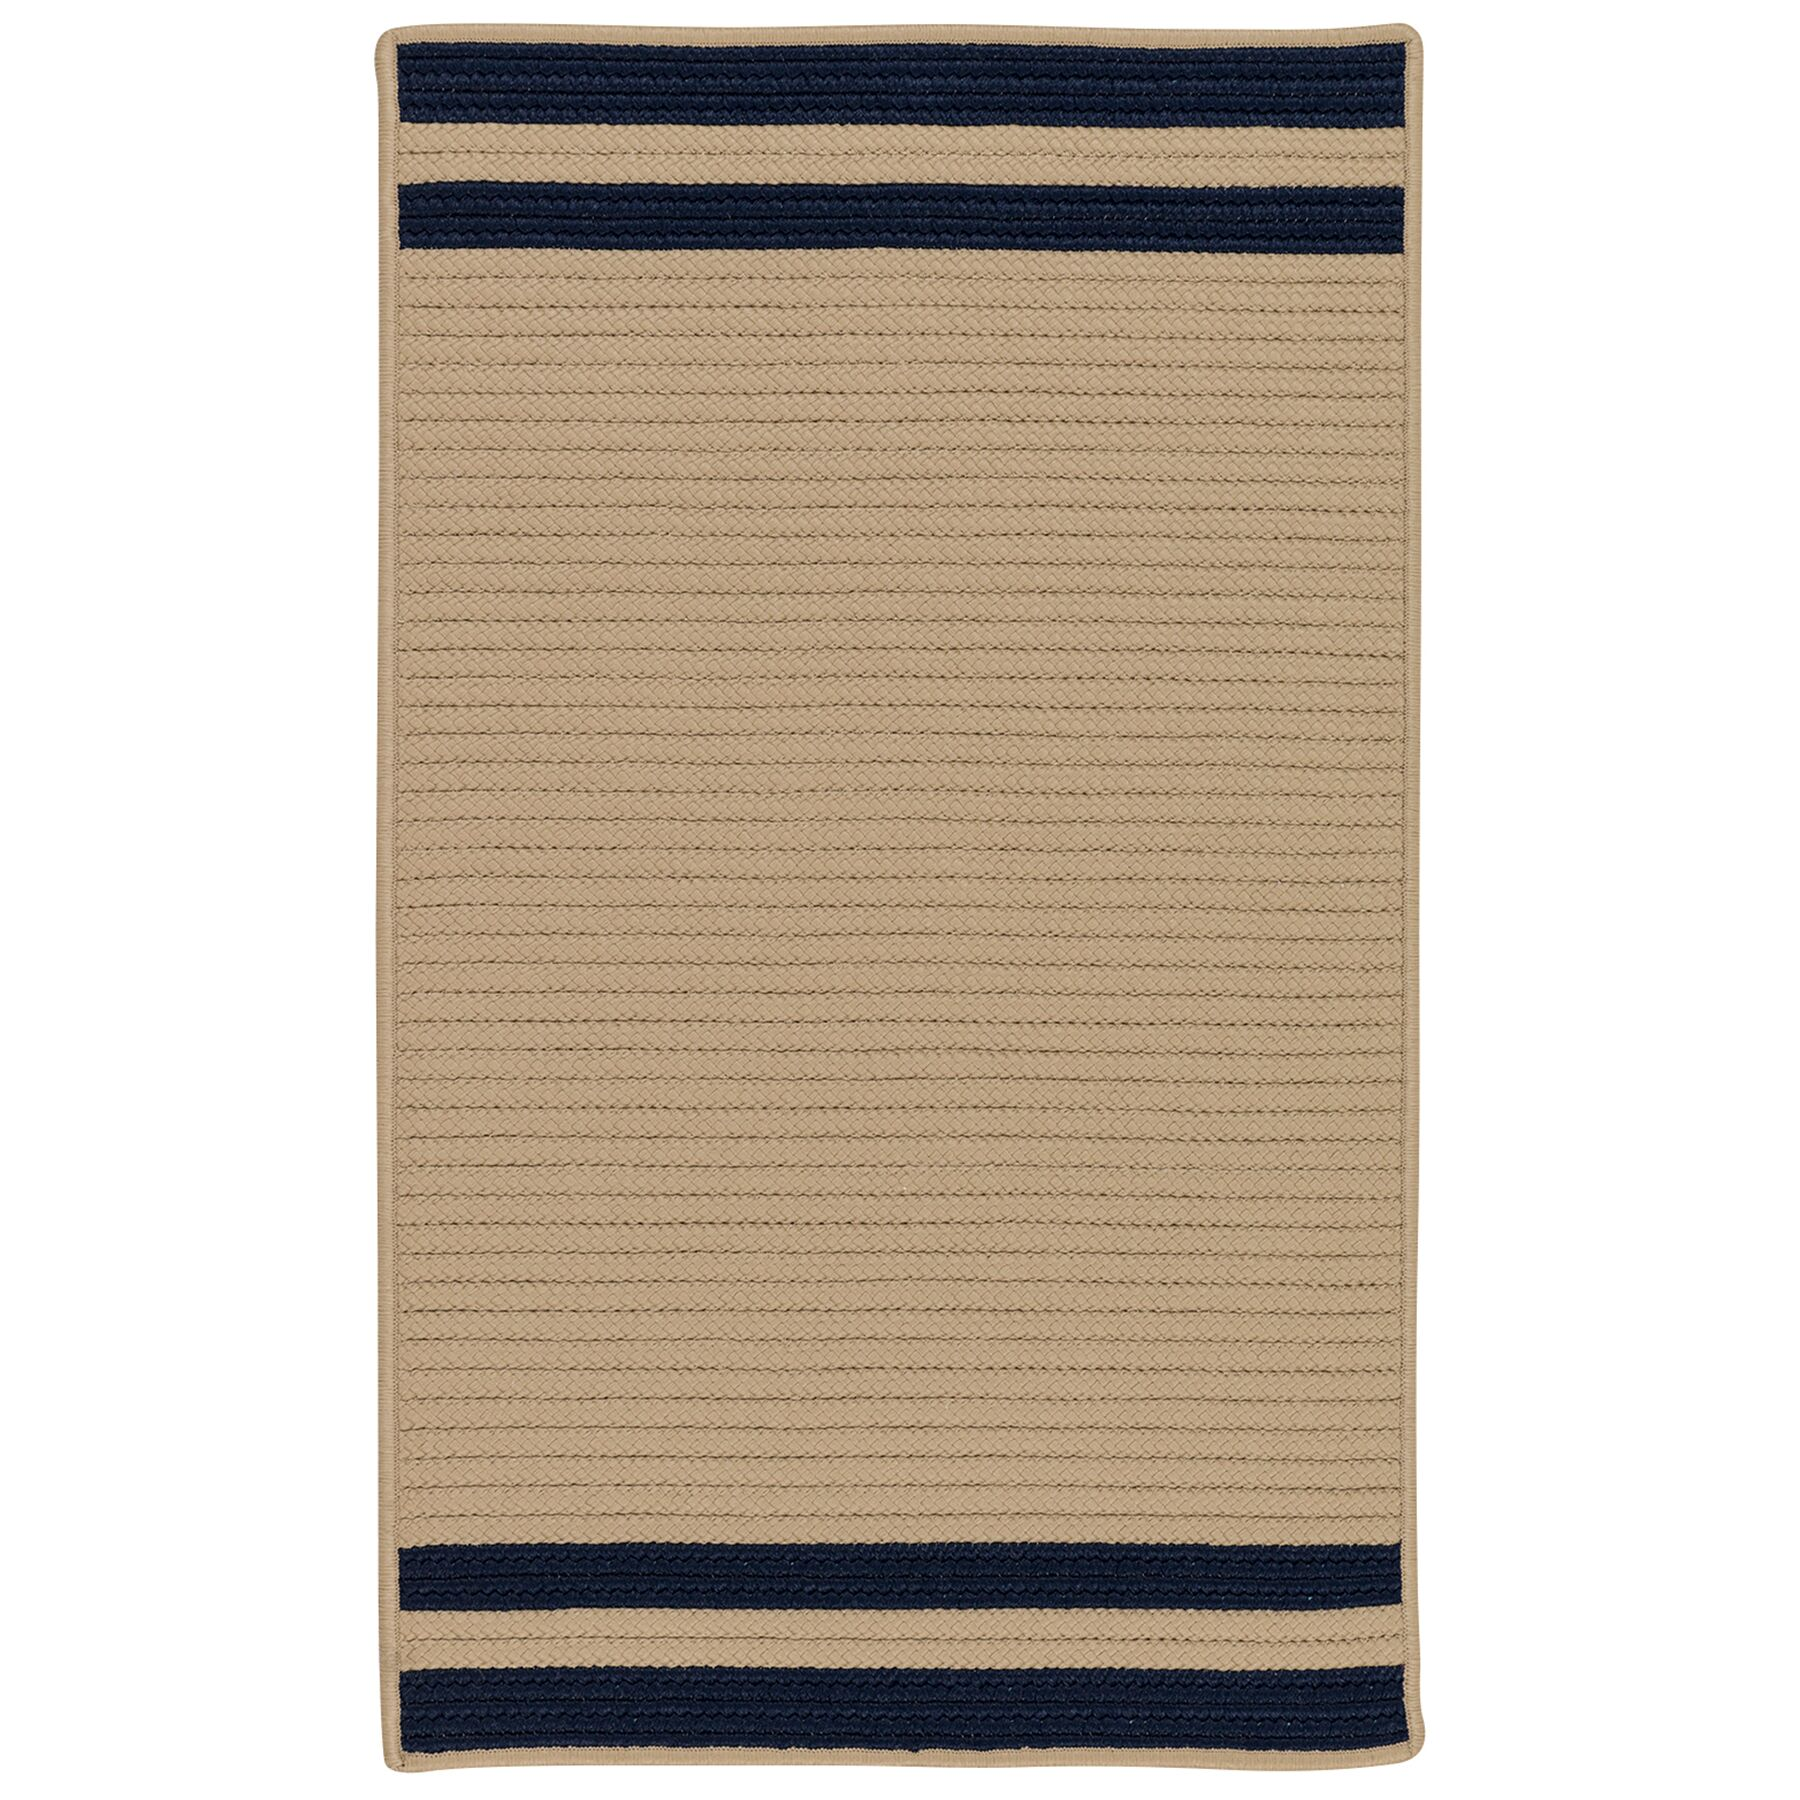 Kellie Stripe Hand-Braided Brown/Navy Indoor/Outdoor Area Rug Rug Size: Rectangle 4' x 6'